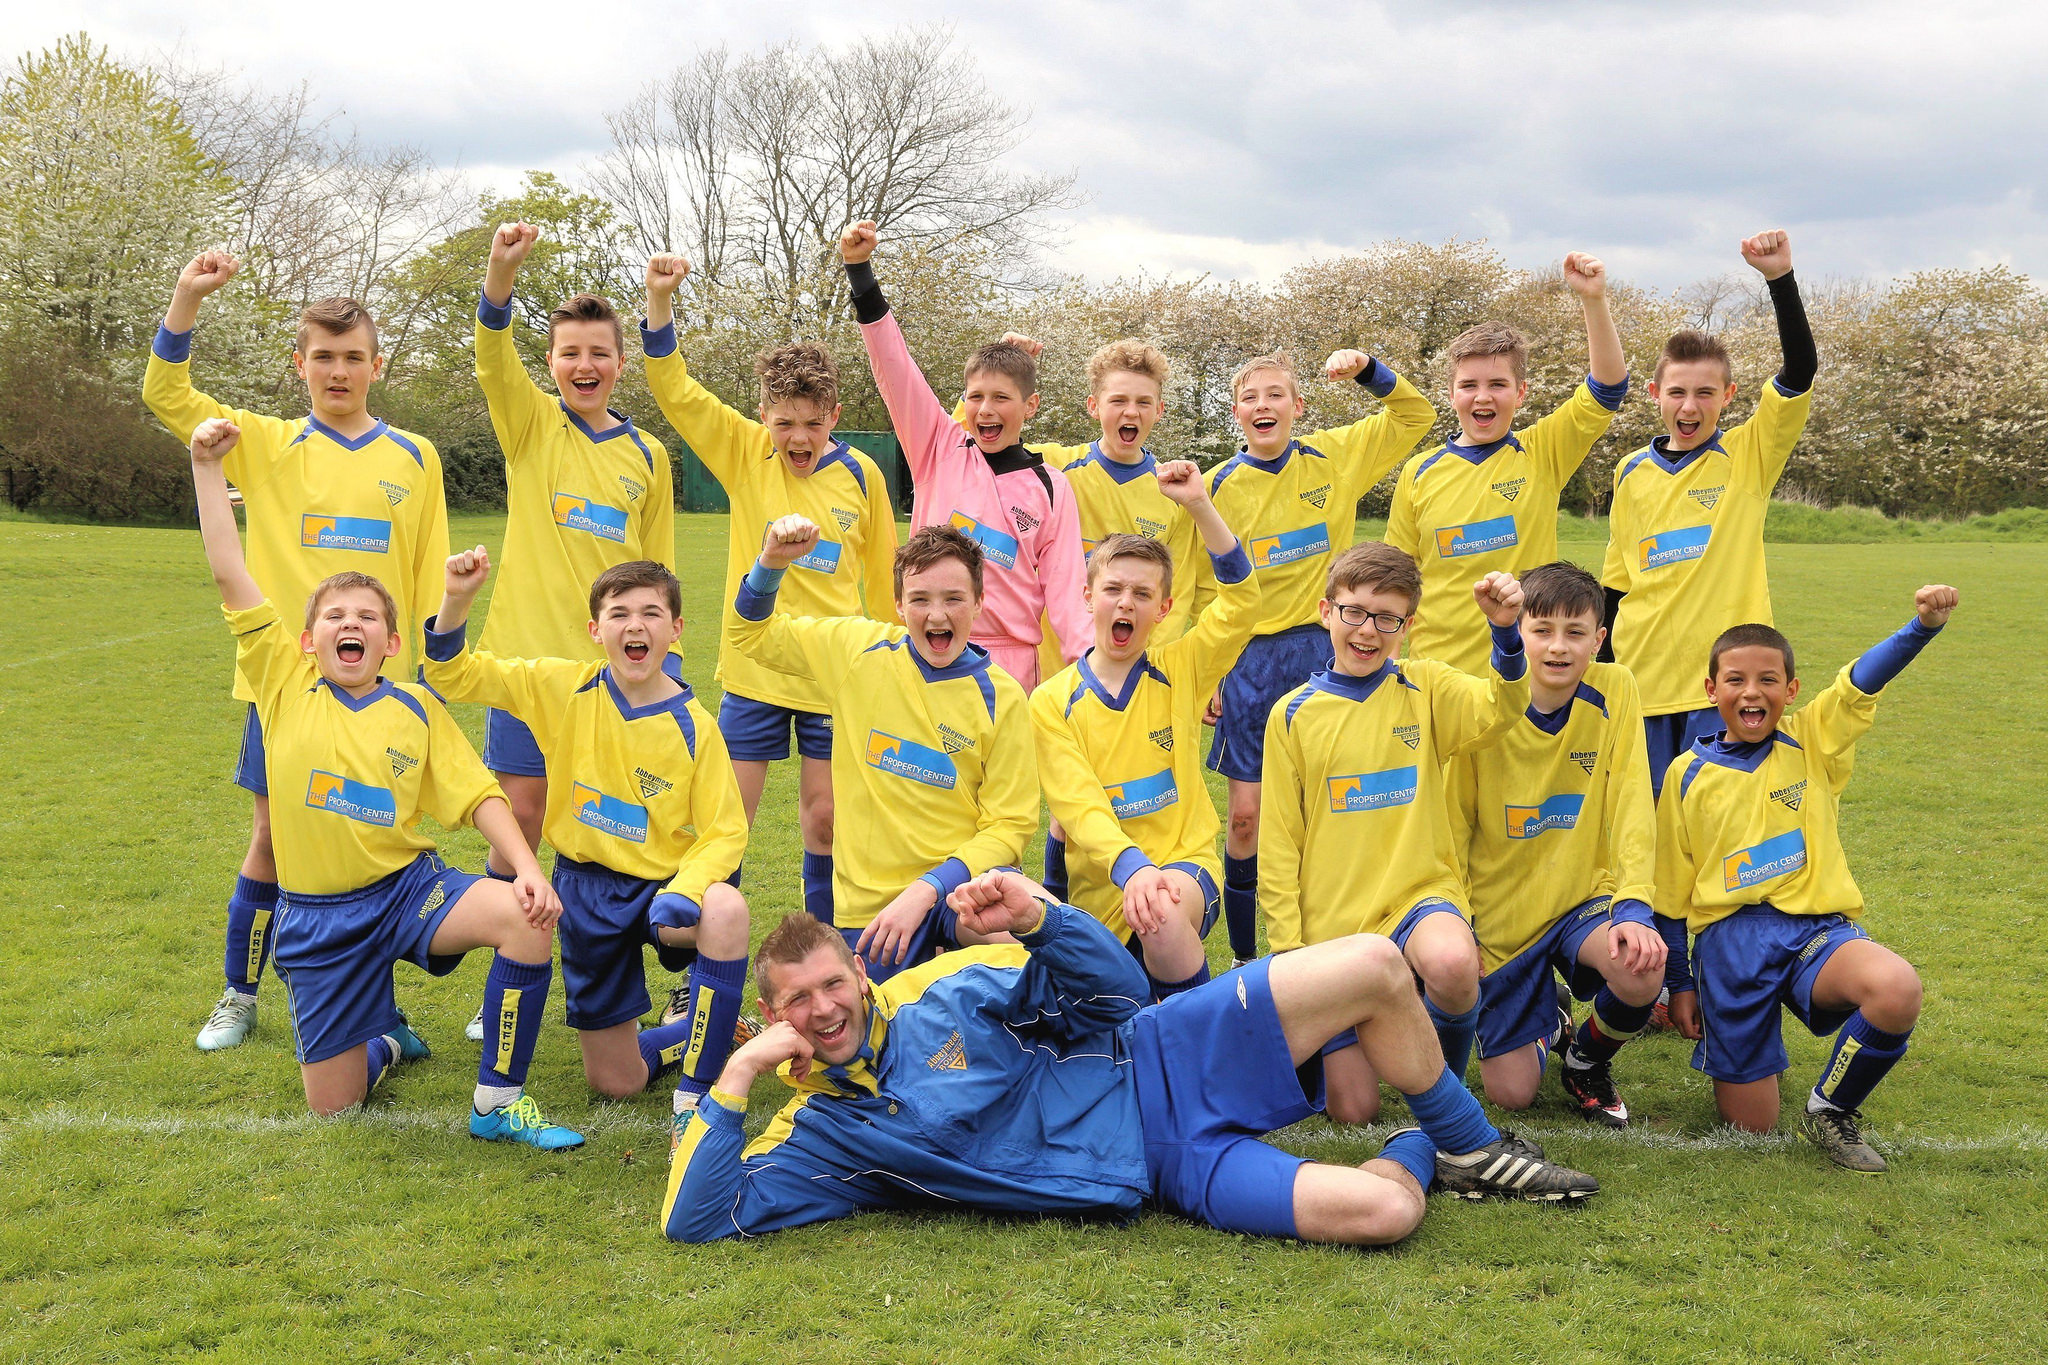 Abbeymead Rovers Football Club